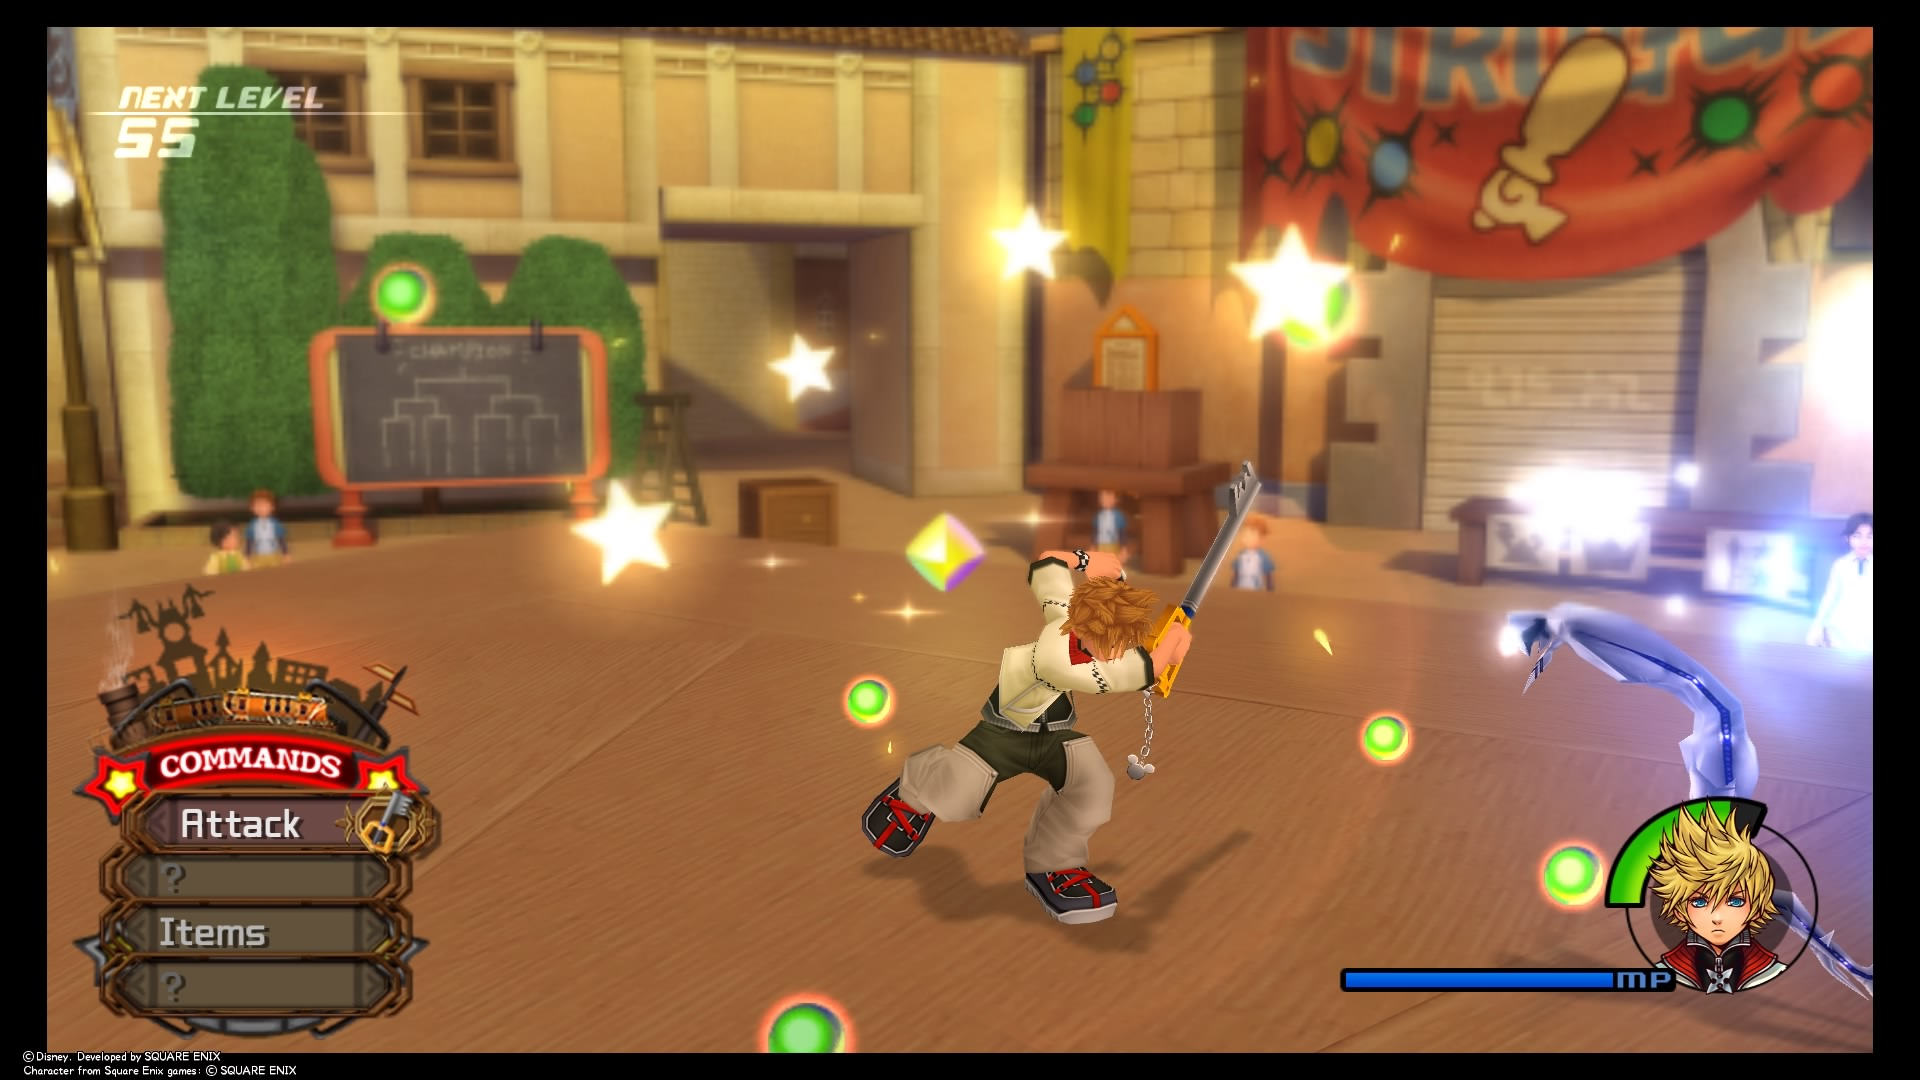 Kingdom Hearts I.5 + II.5 ReMIX: Vale a pena? 7